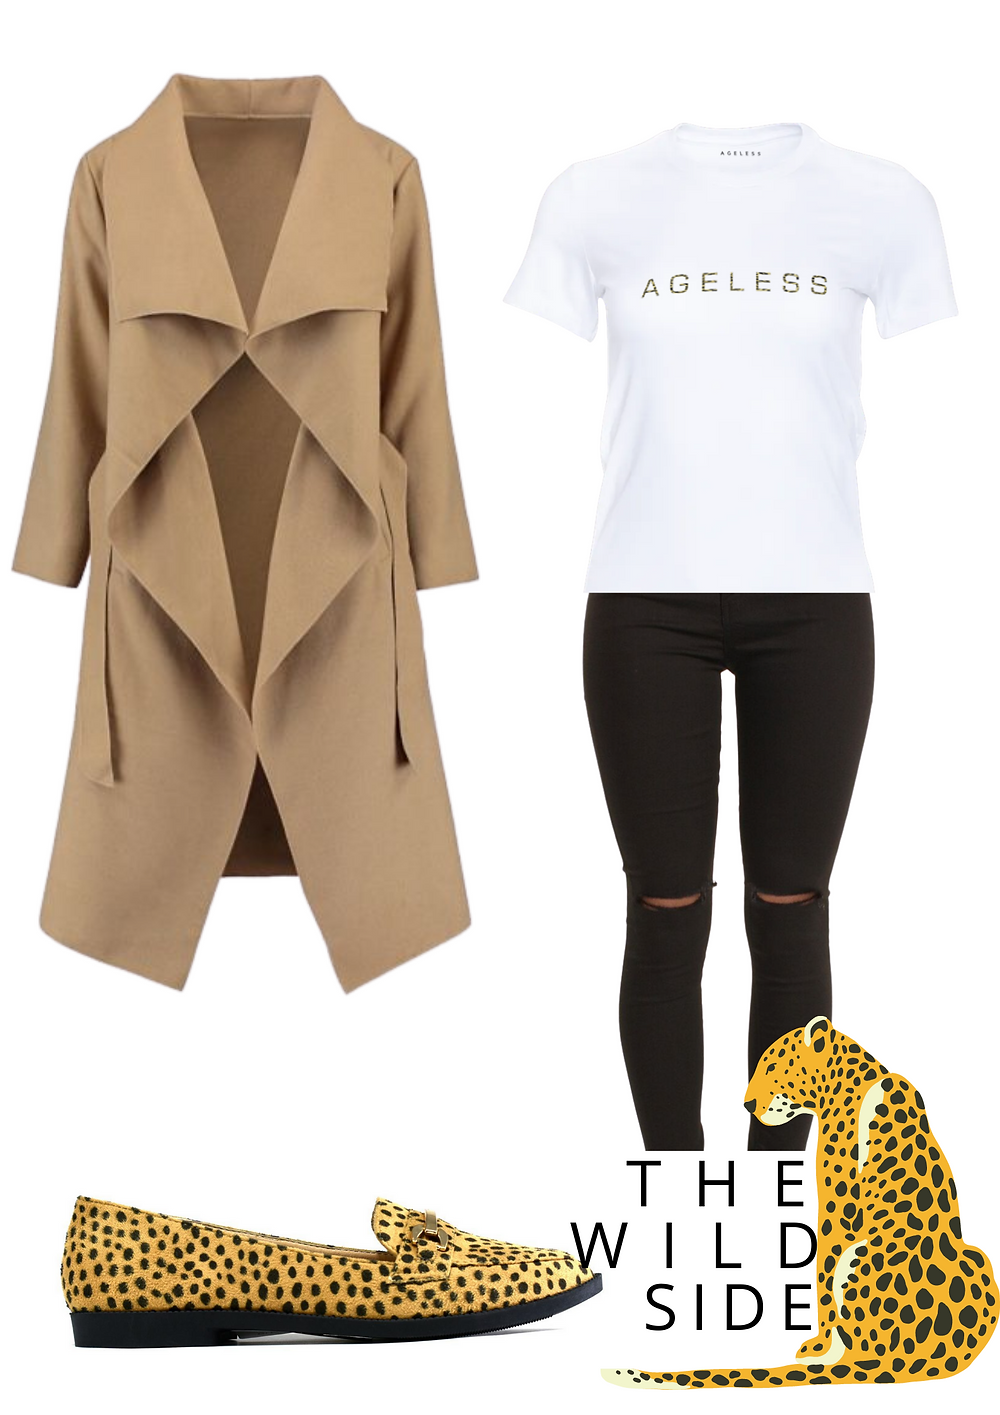 AGELESS WATERFALL COAT £24.95 | AGELESS WILD THING FITTED T £12.95 | AGELESS WILD THING PUMPS £12.95